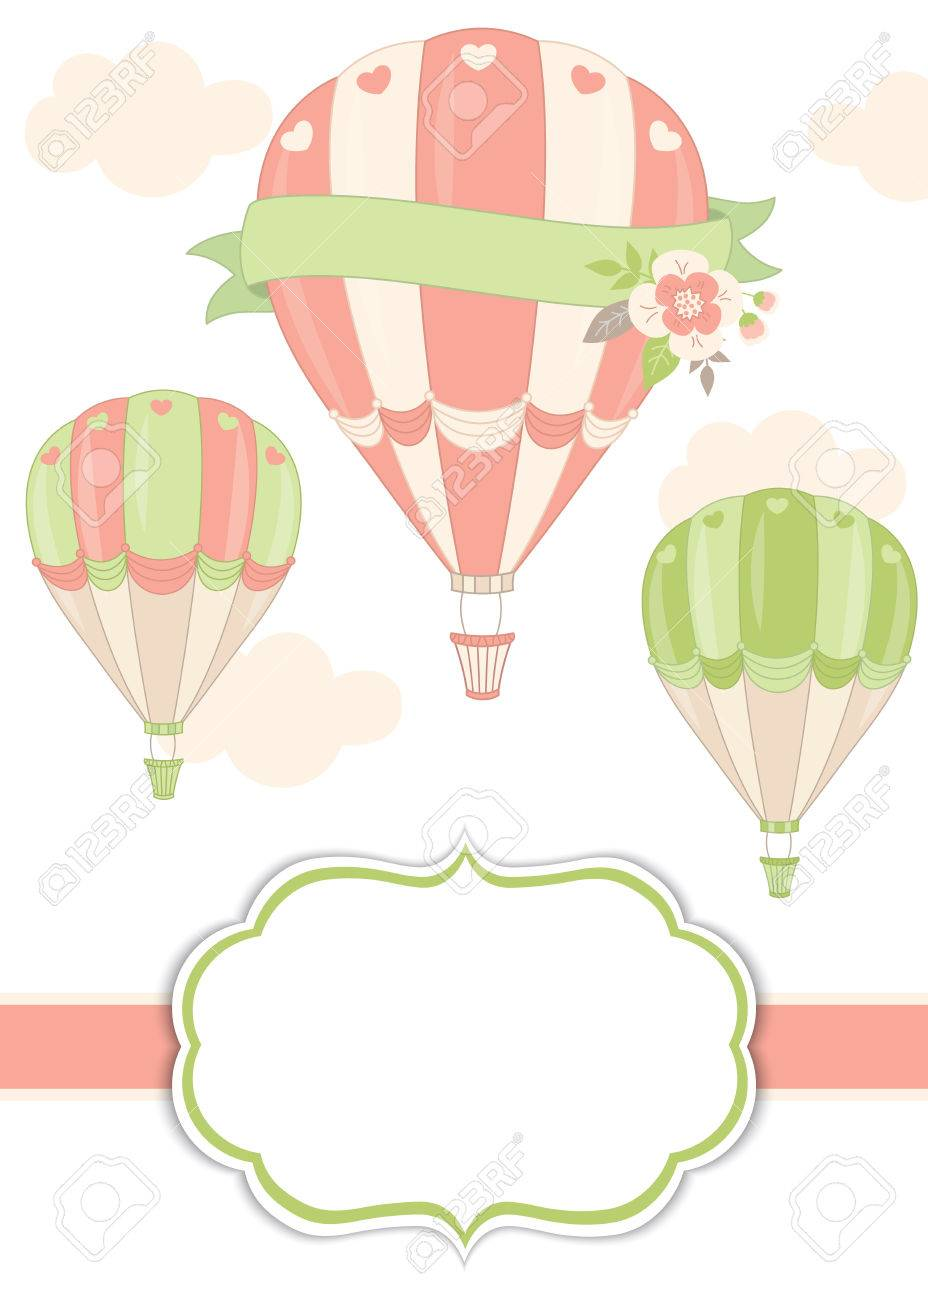 Vector Card Template With Air Balloons In Pastel Color